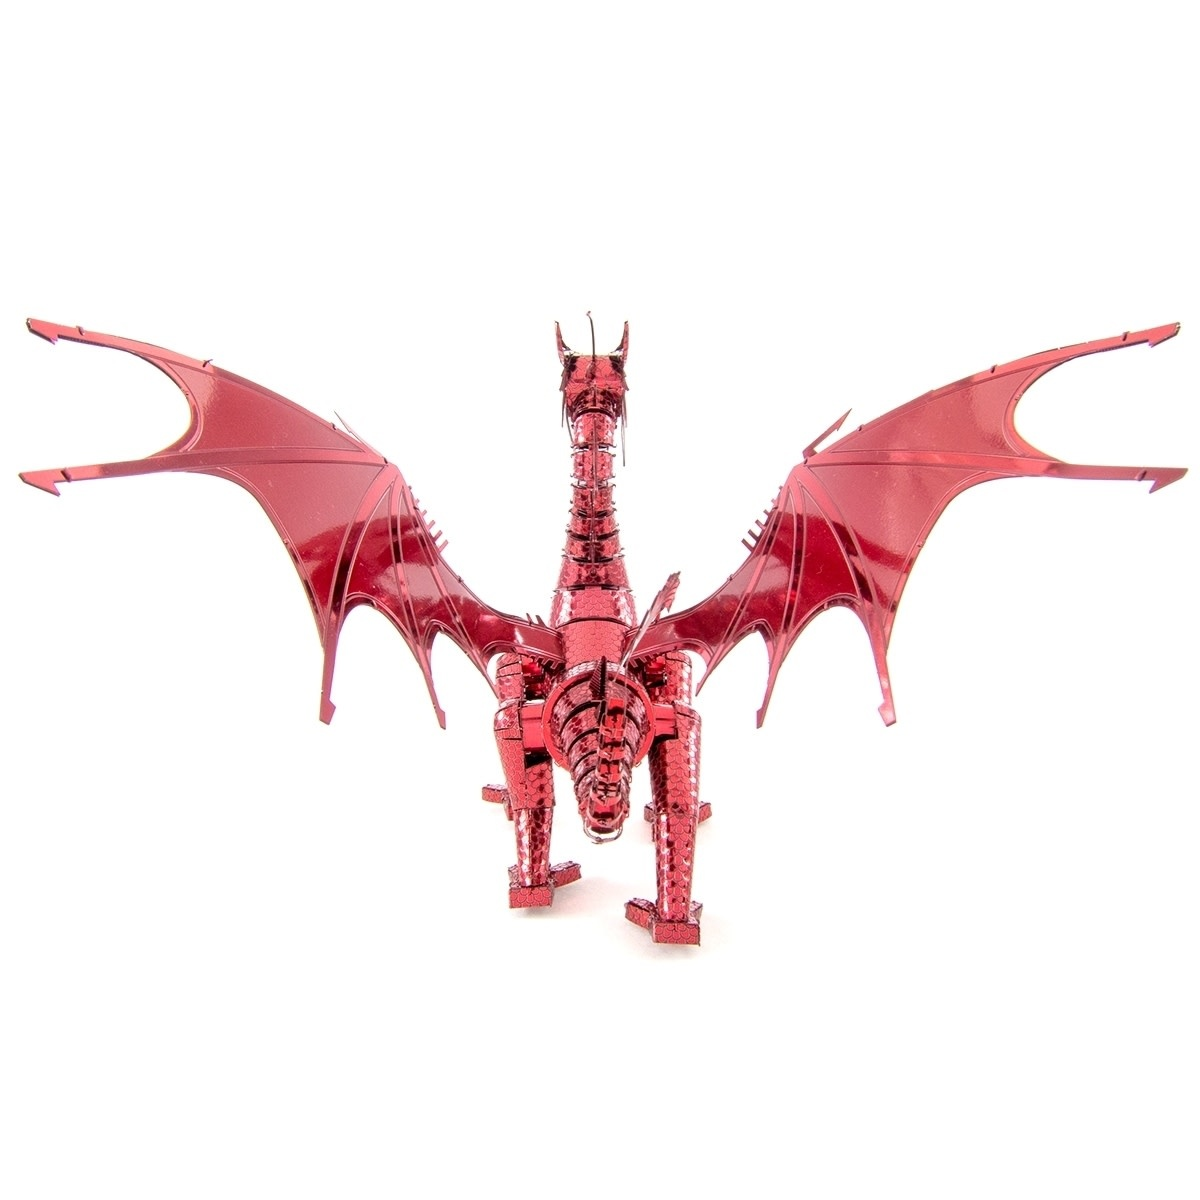 Fascinations Red Dragon 3D Metal Model by Fascinations